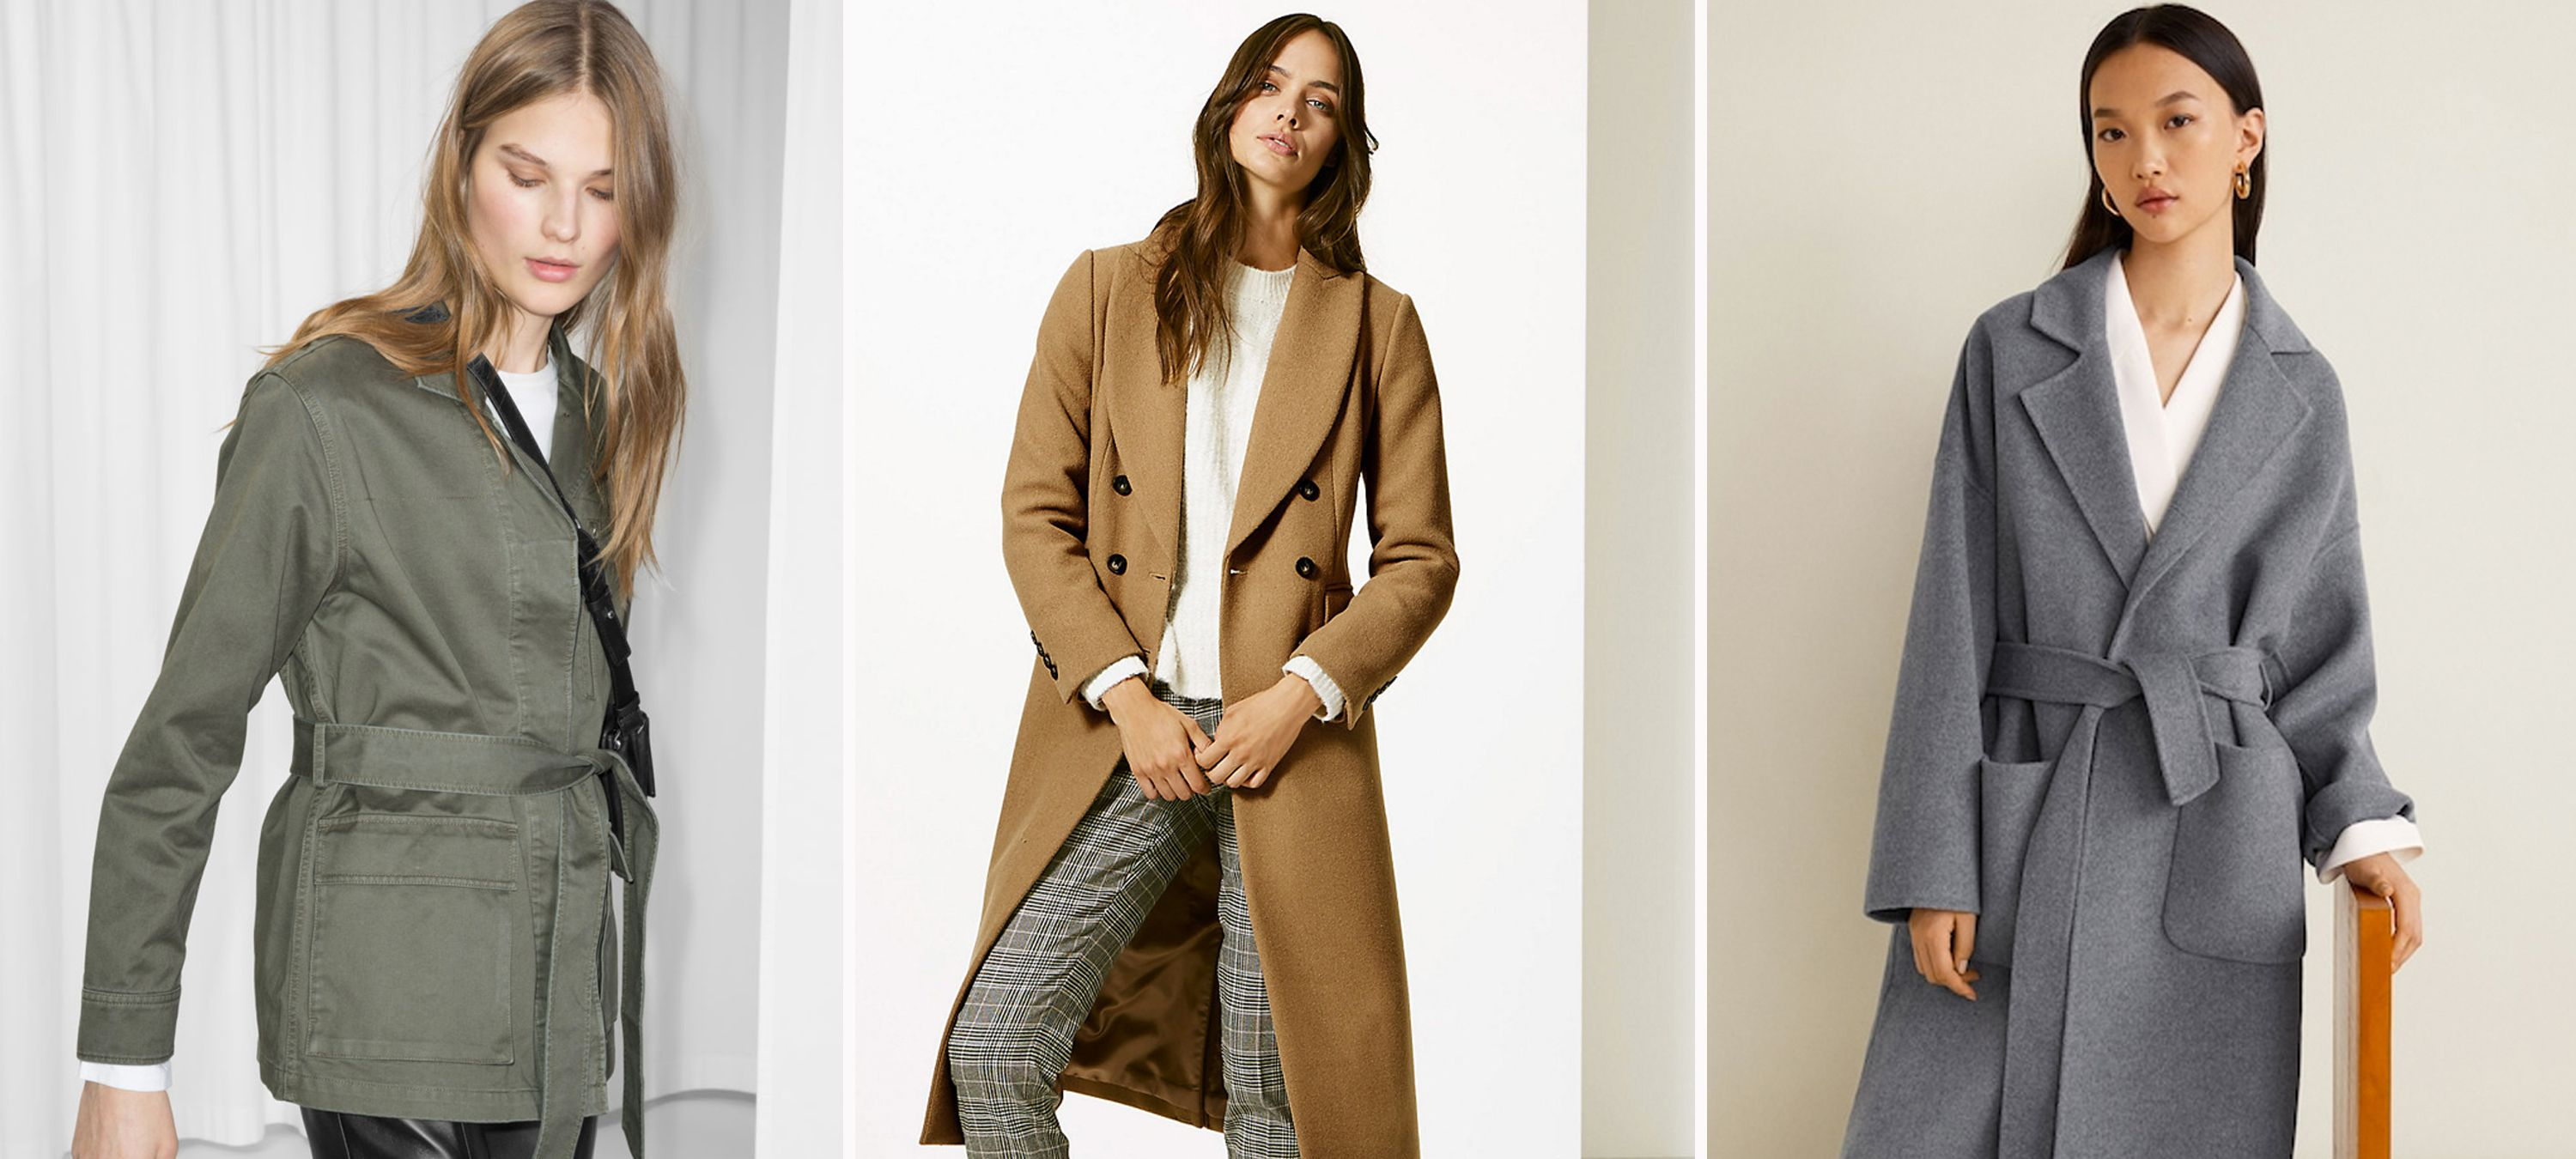 Under 100: 10 Seriously Stylish Winter Coats That Won't Blow Your Budget ThisSeason